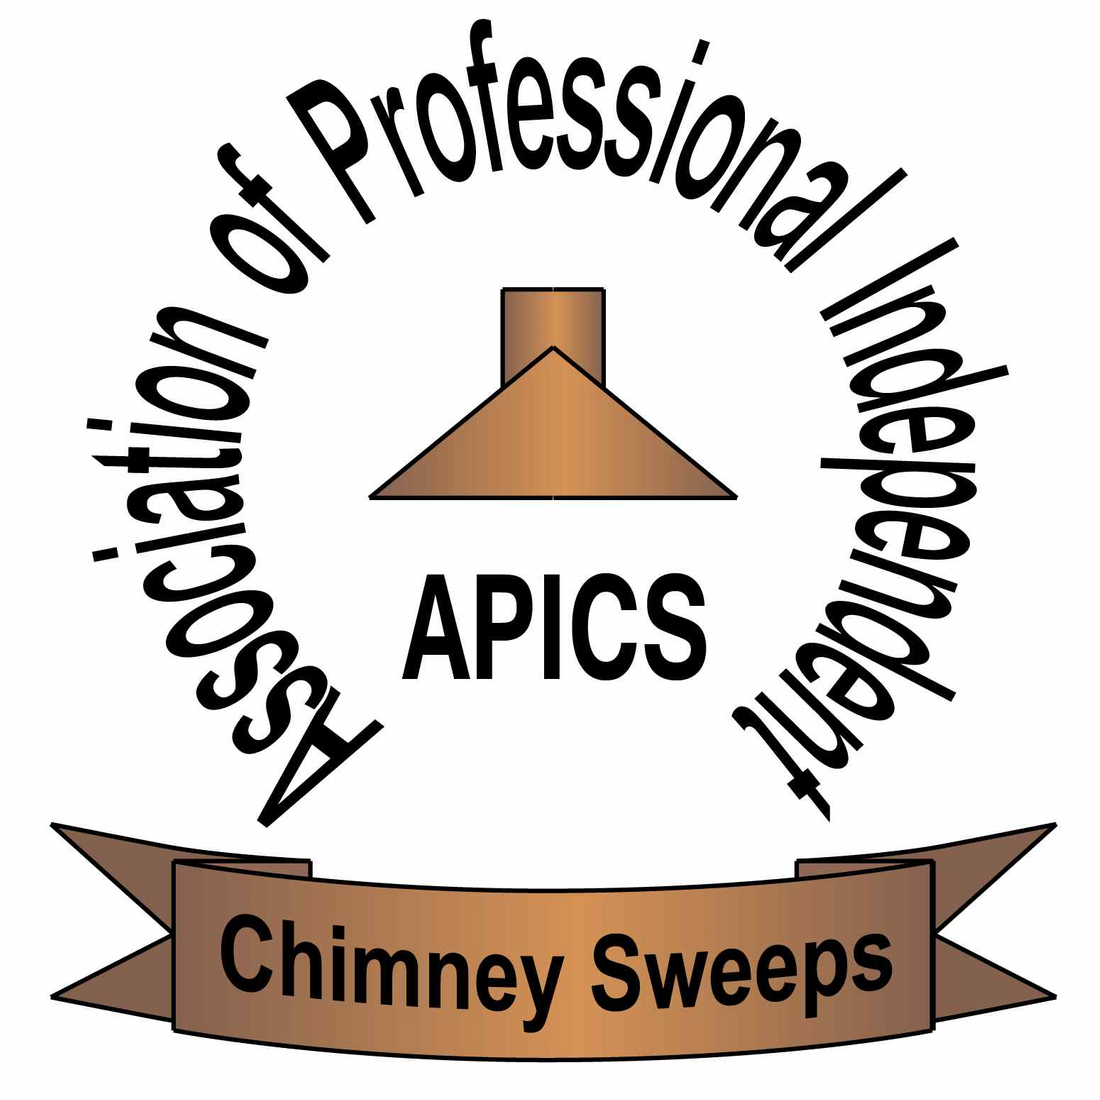 APICS Association of Professional Independent Chimney Sweeps